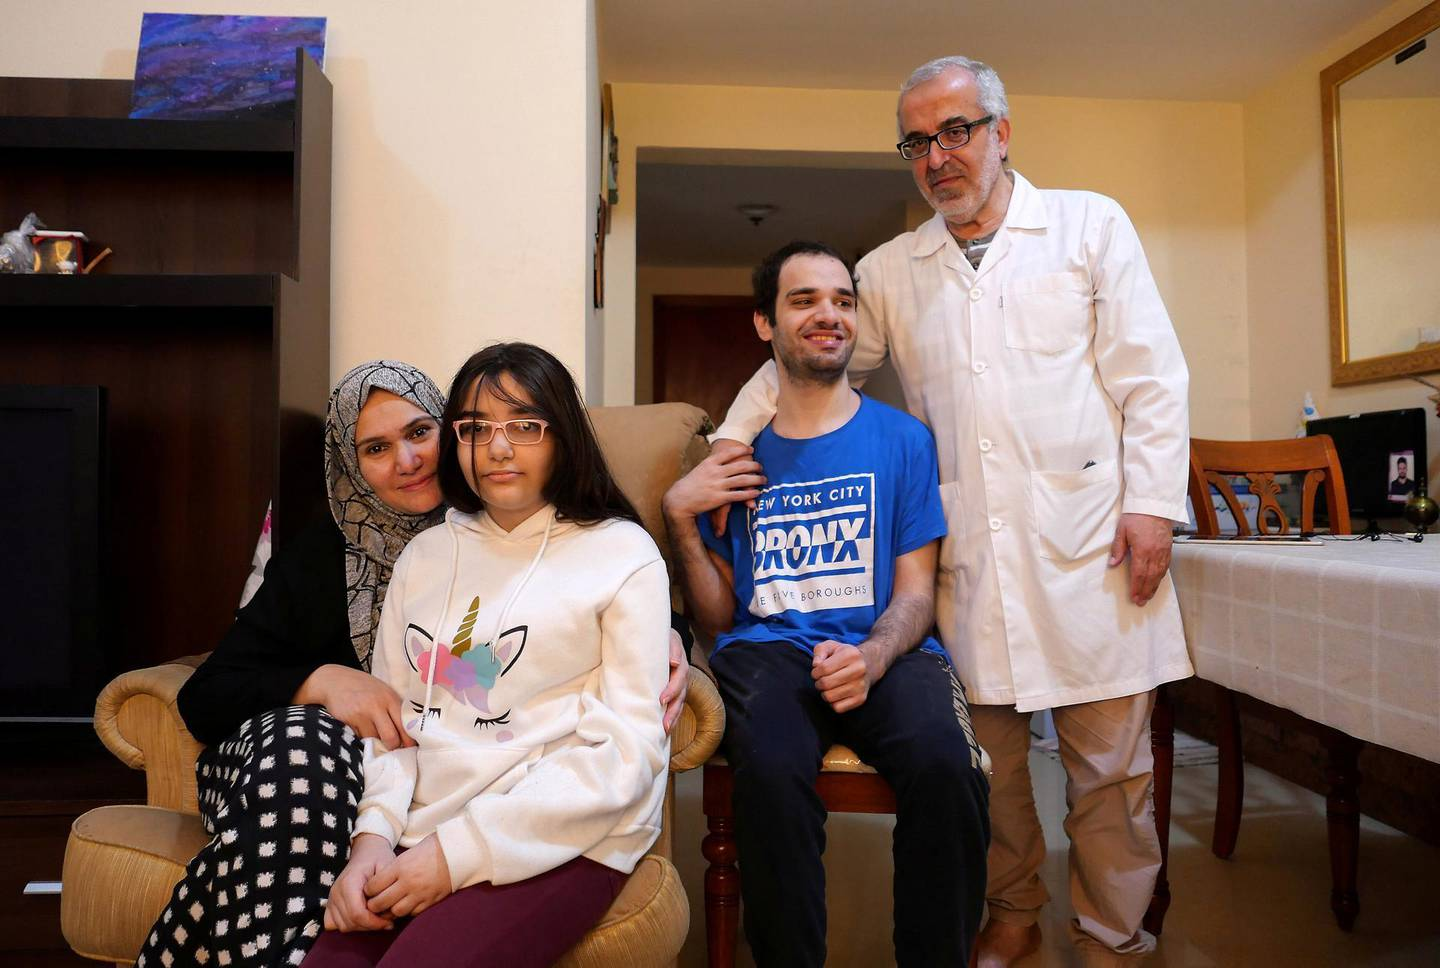 AJMAN, UNITED ARAB EMIRATES , March 14, 2021 – Jamal Abu Labam with his wife Manal Tamim , daughter Sama Abu Laban and son Almotaz bella Abu Laban from Syria at his apartment in Ajman. (Pawan Singh / The National) For News/Online/Instagram. Story by Haneen